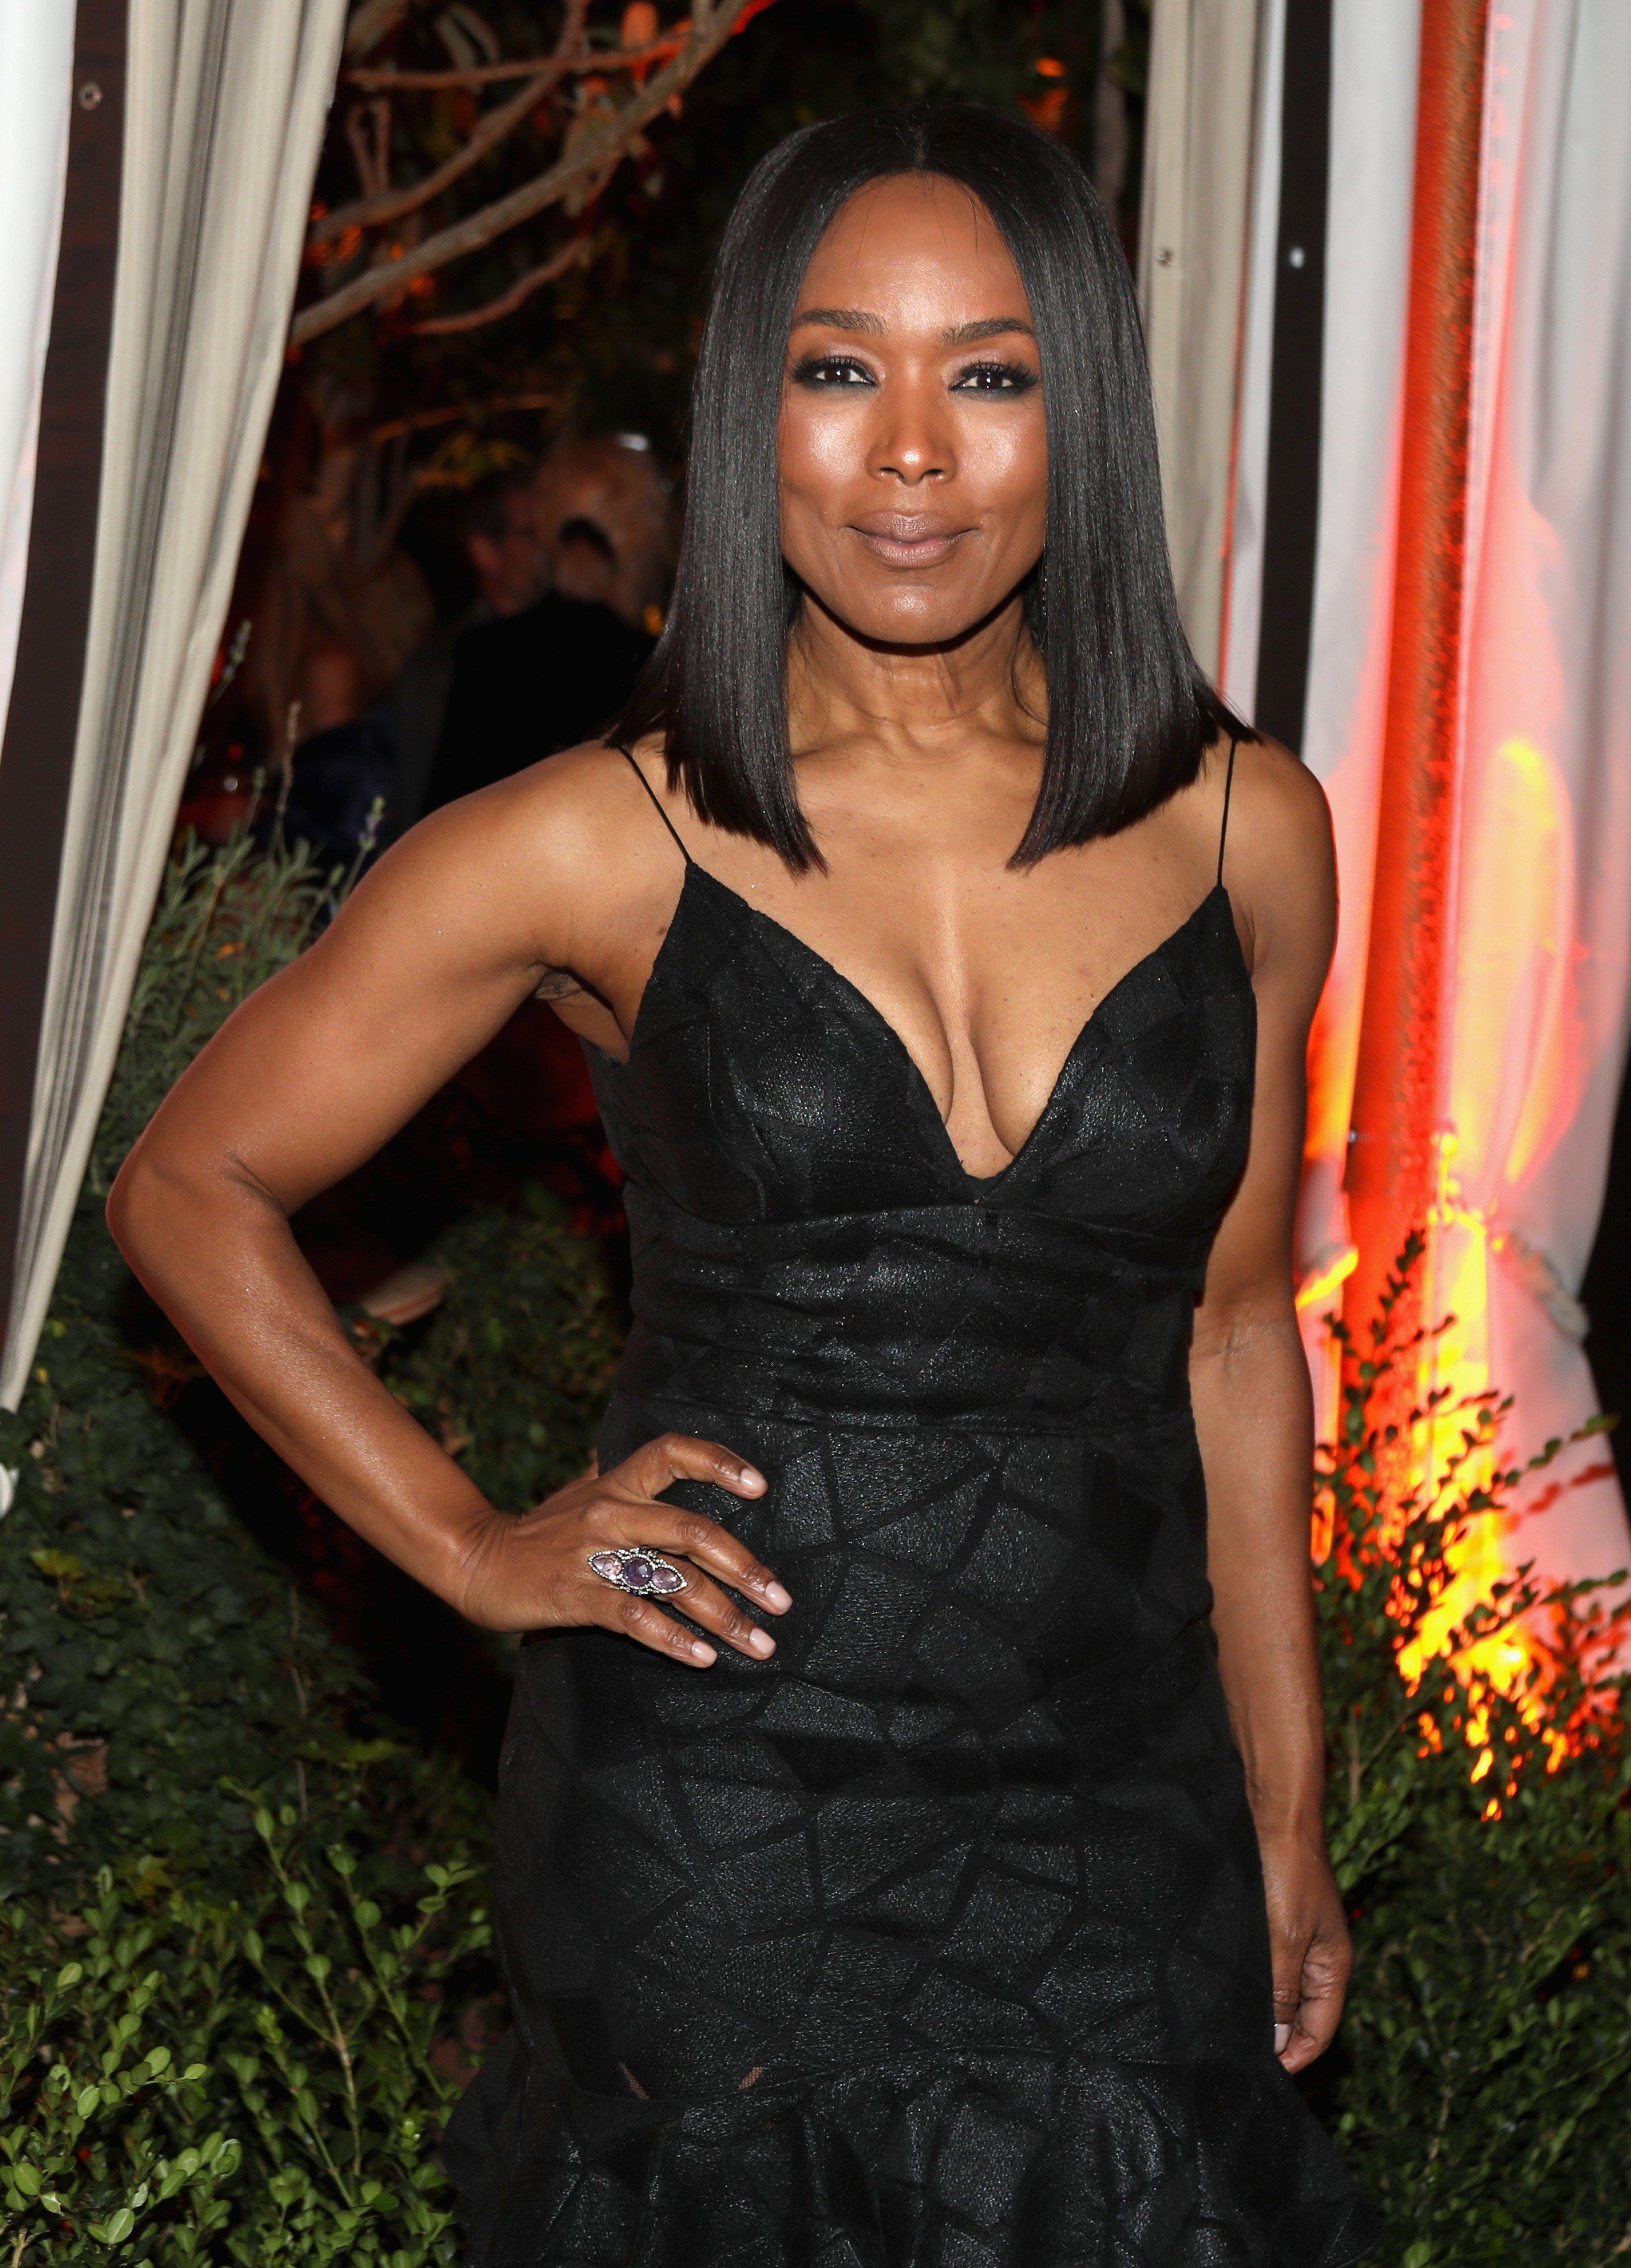 Angela Bassett at the LAND of distraction Launch Party on Nov. 30, 2017 in California | Photo: Getty Images